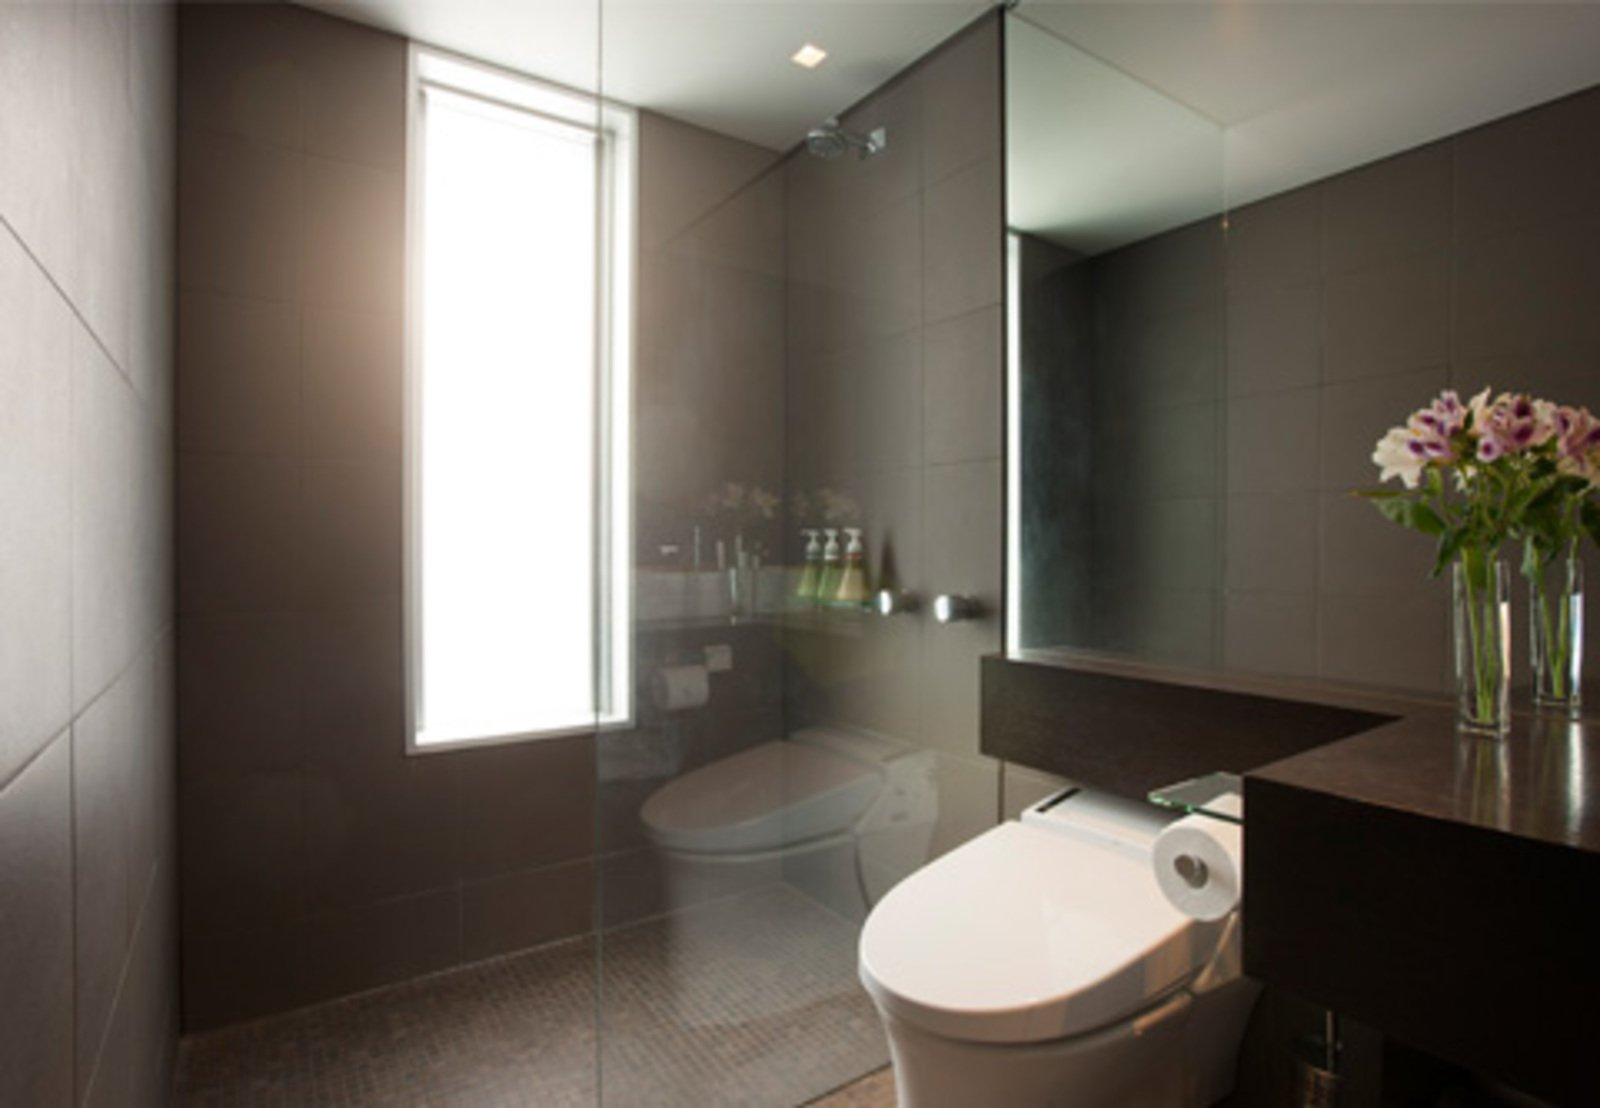 Setsumon 2 bedroom premier apartment bathroom large